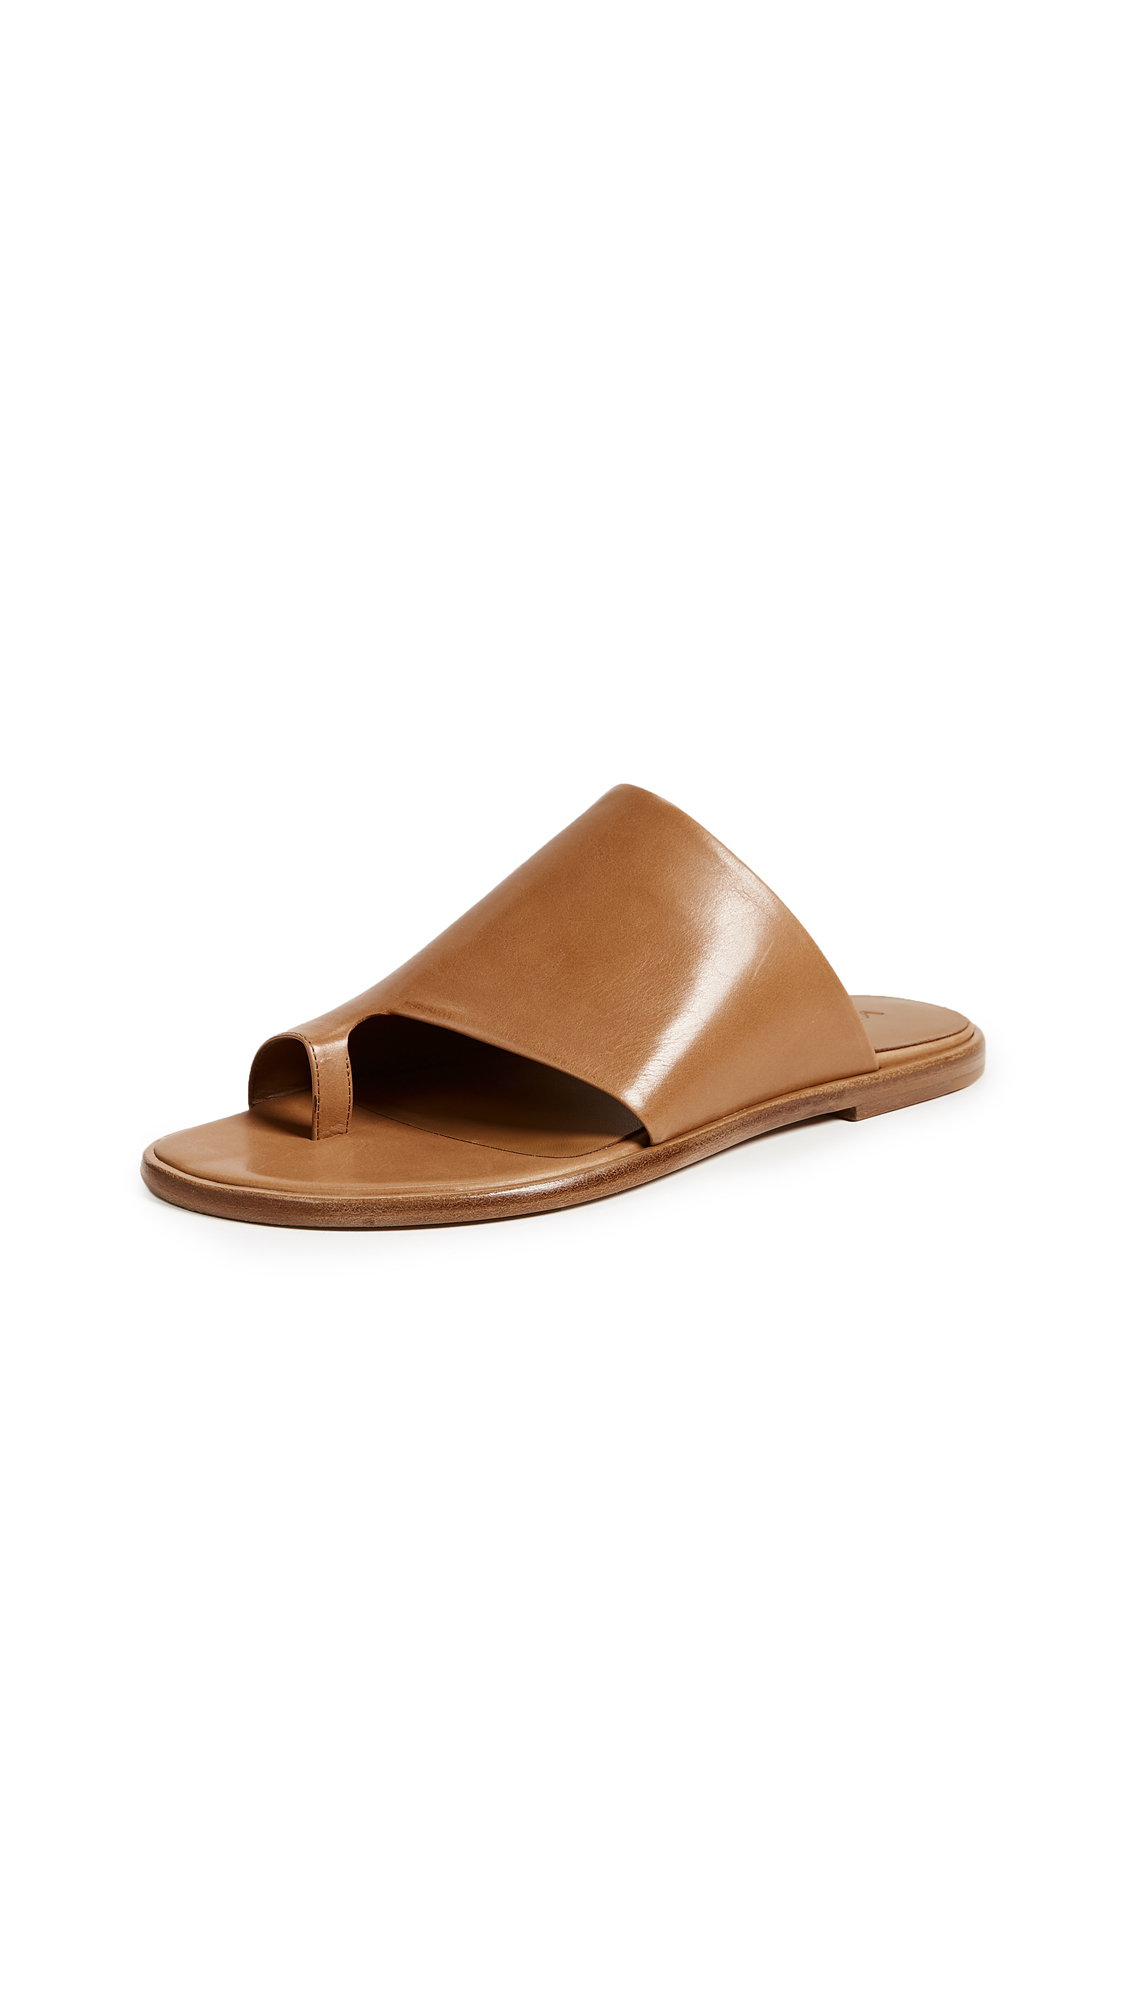 Vince Edris Sandals - Wheat